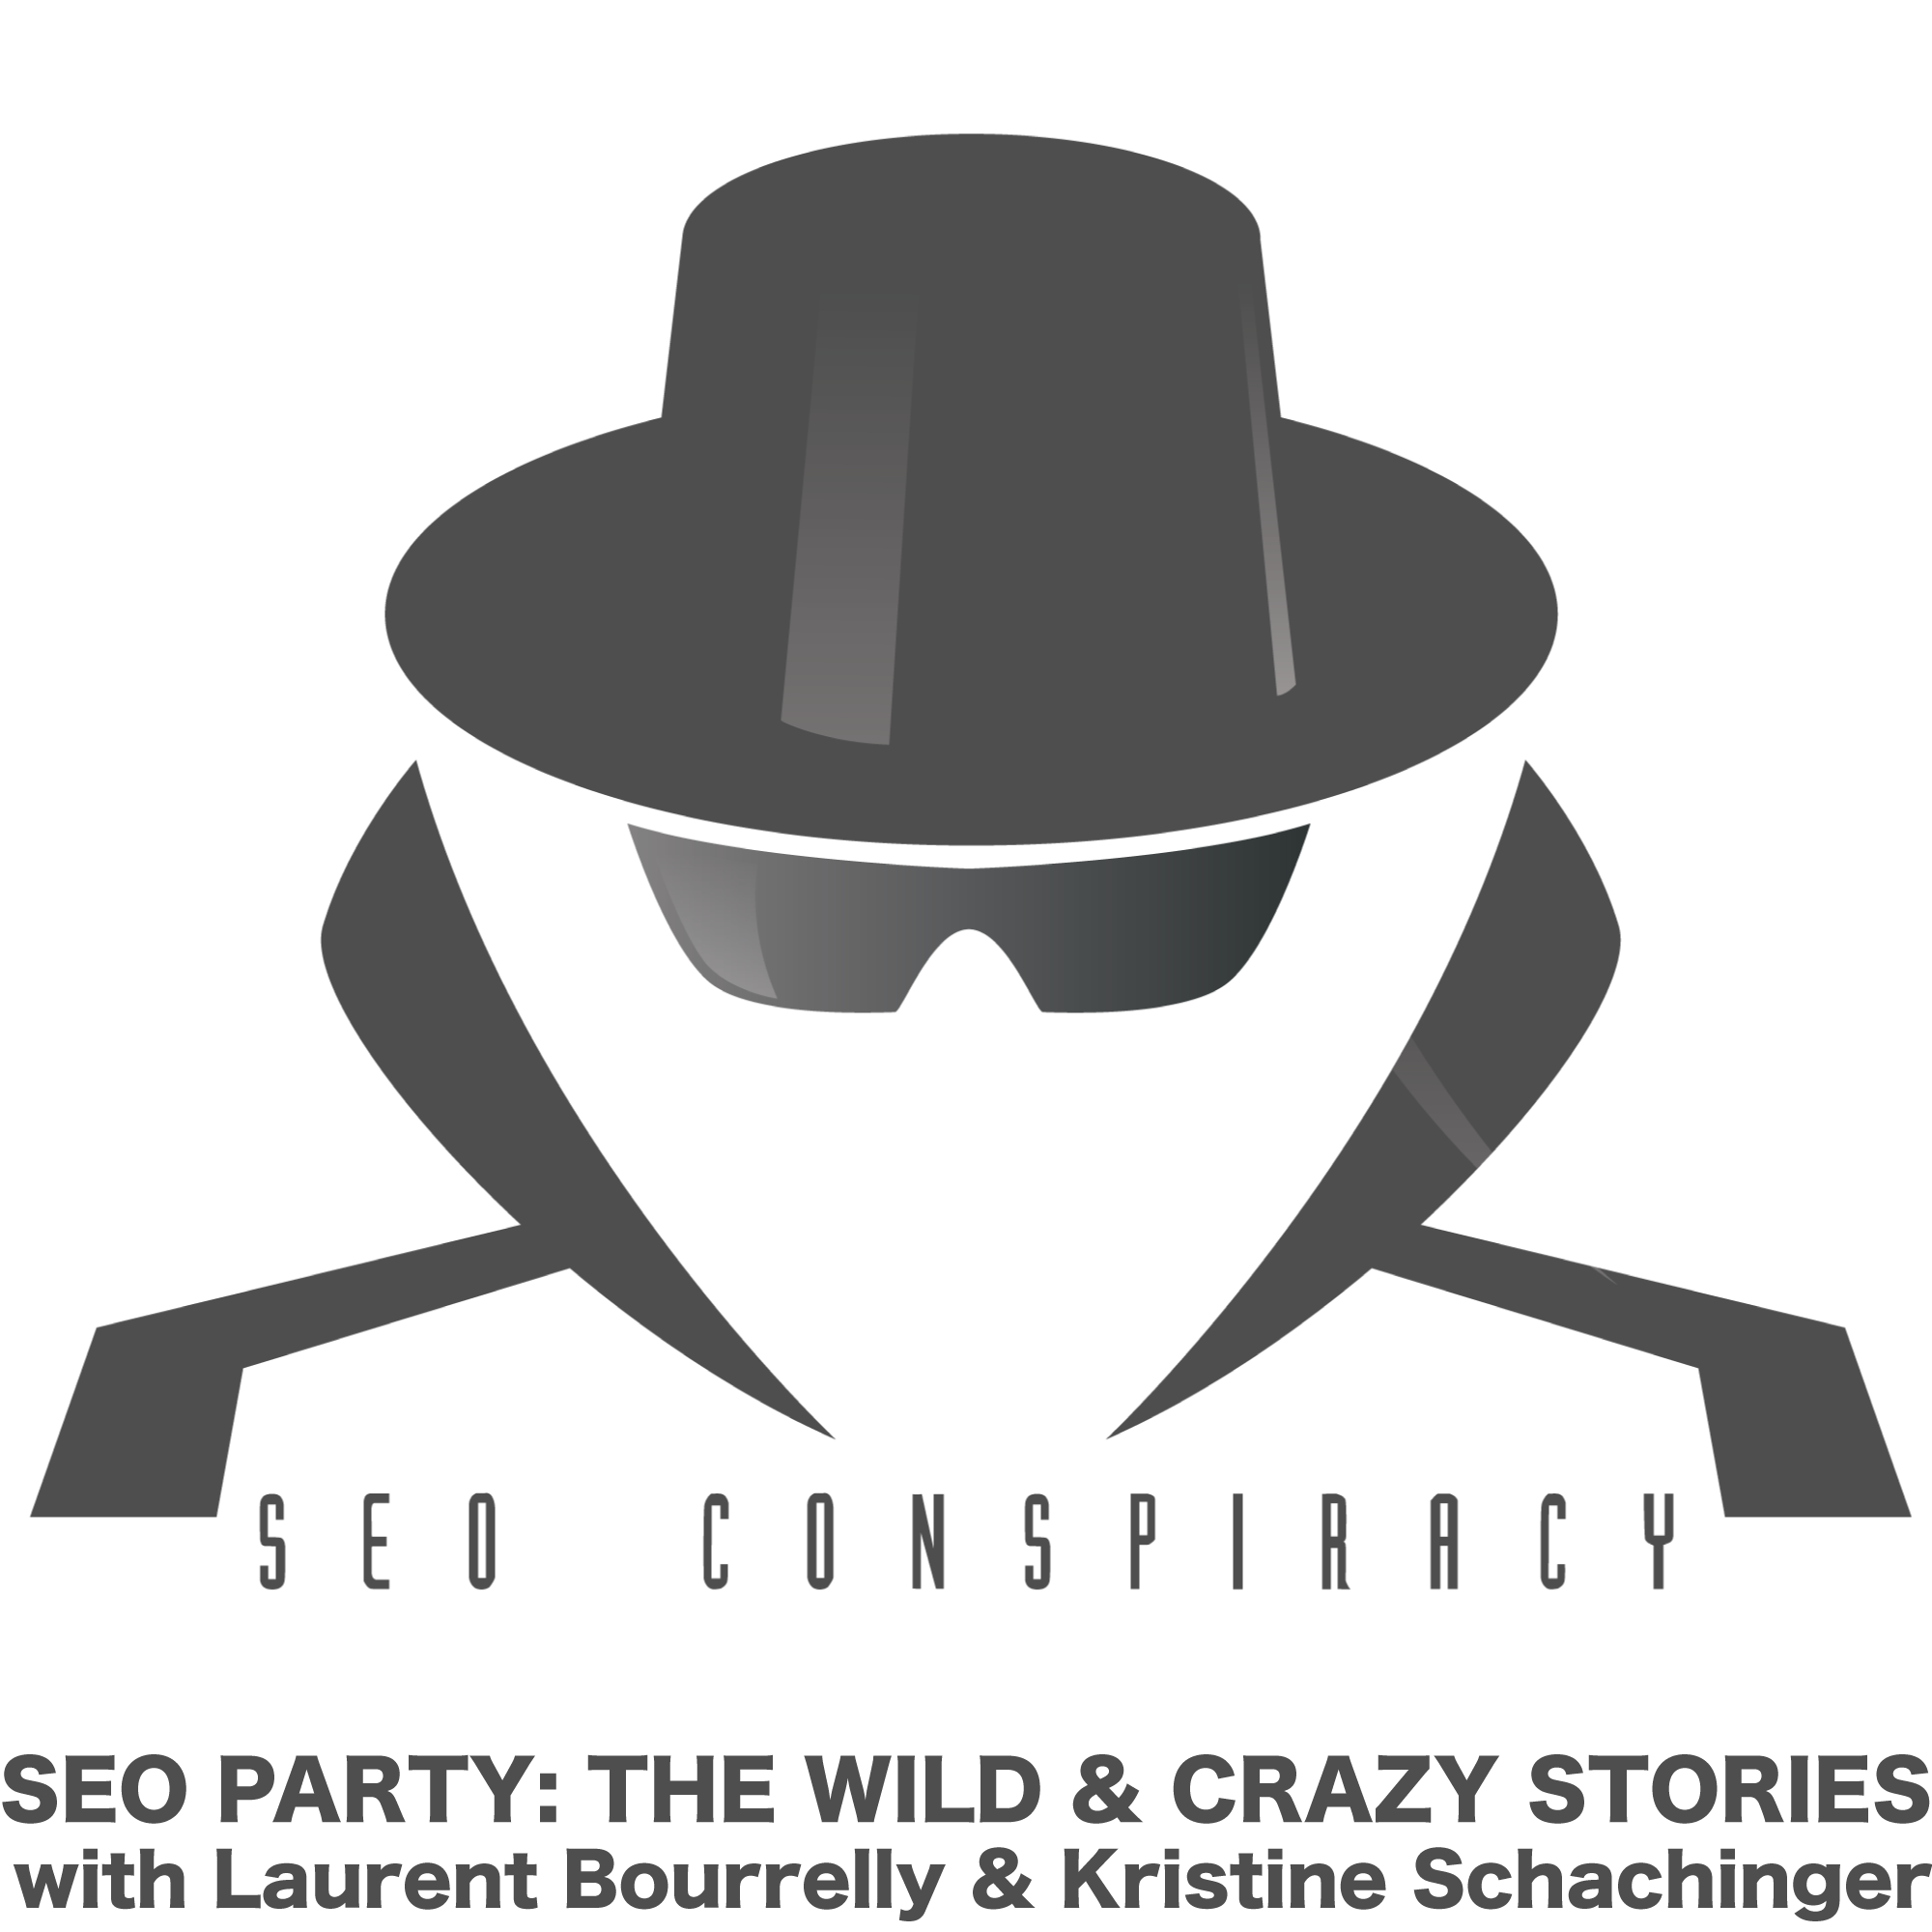 SEO Party, the Wild and Crazy Stories from the Search Industry After Hours